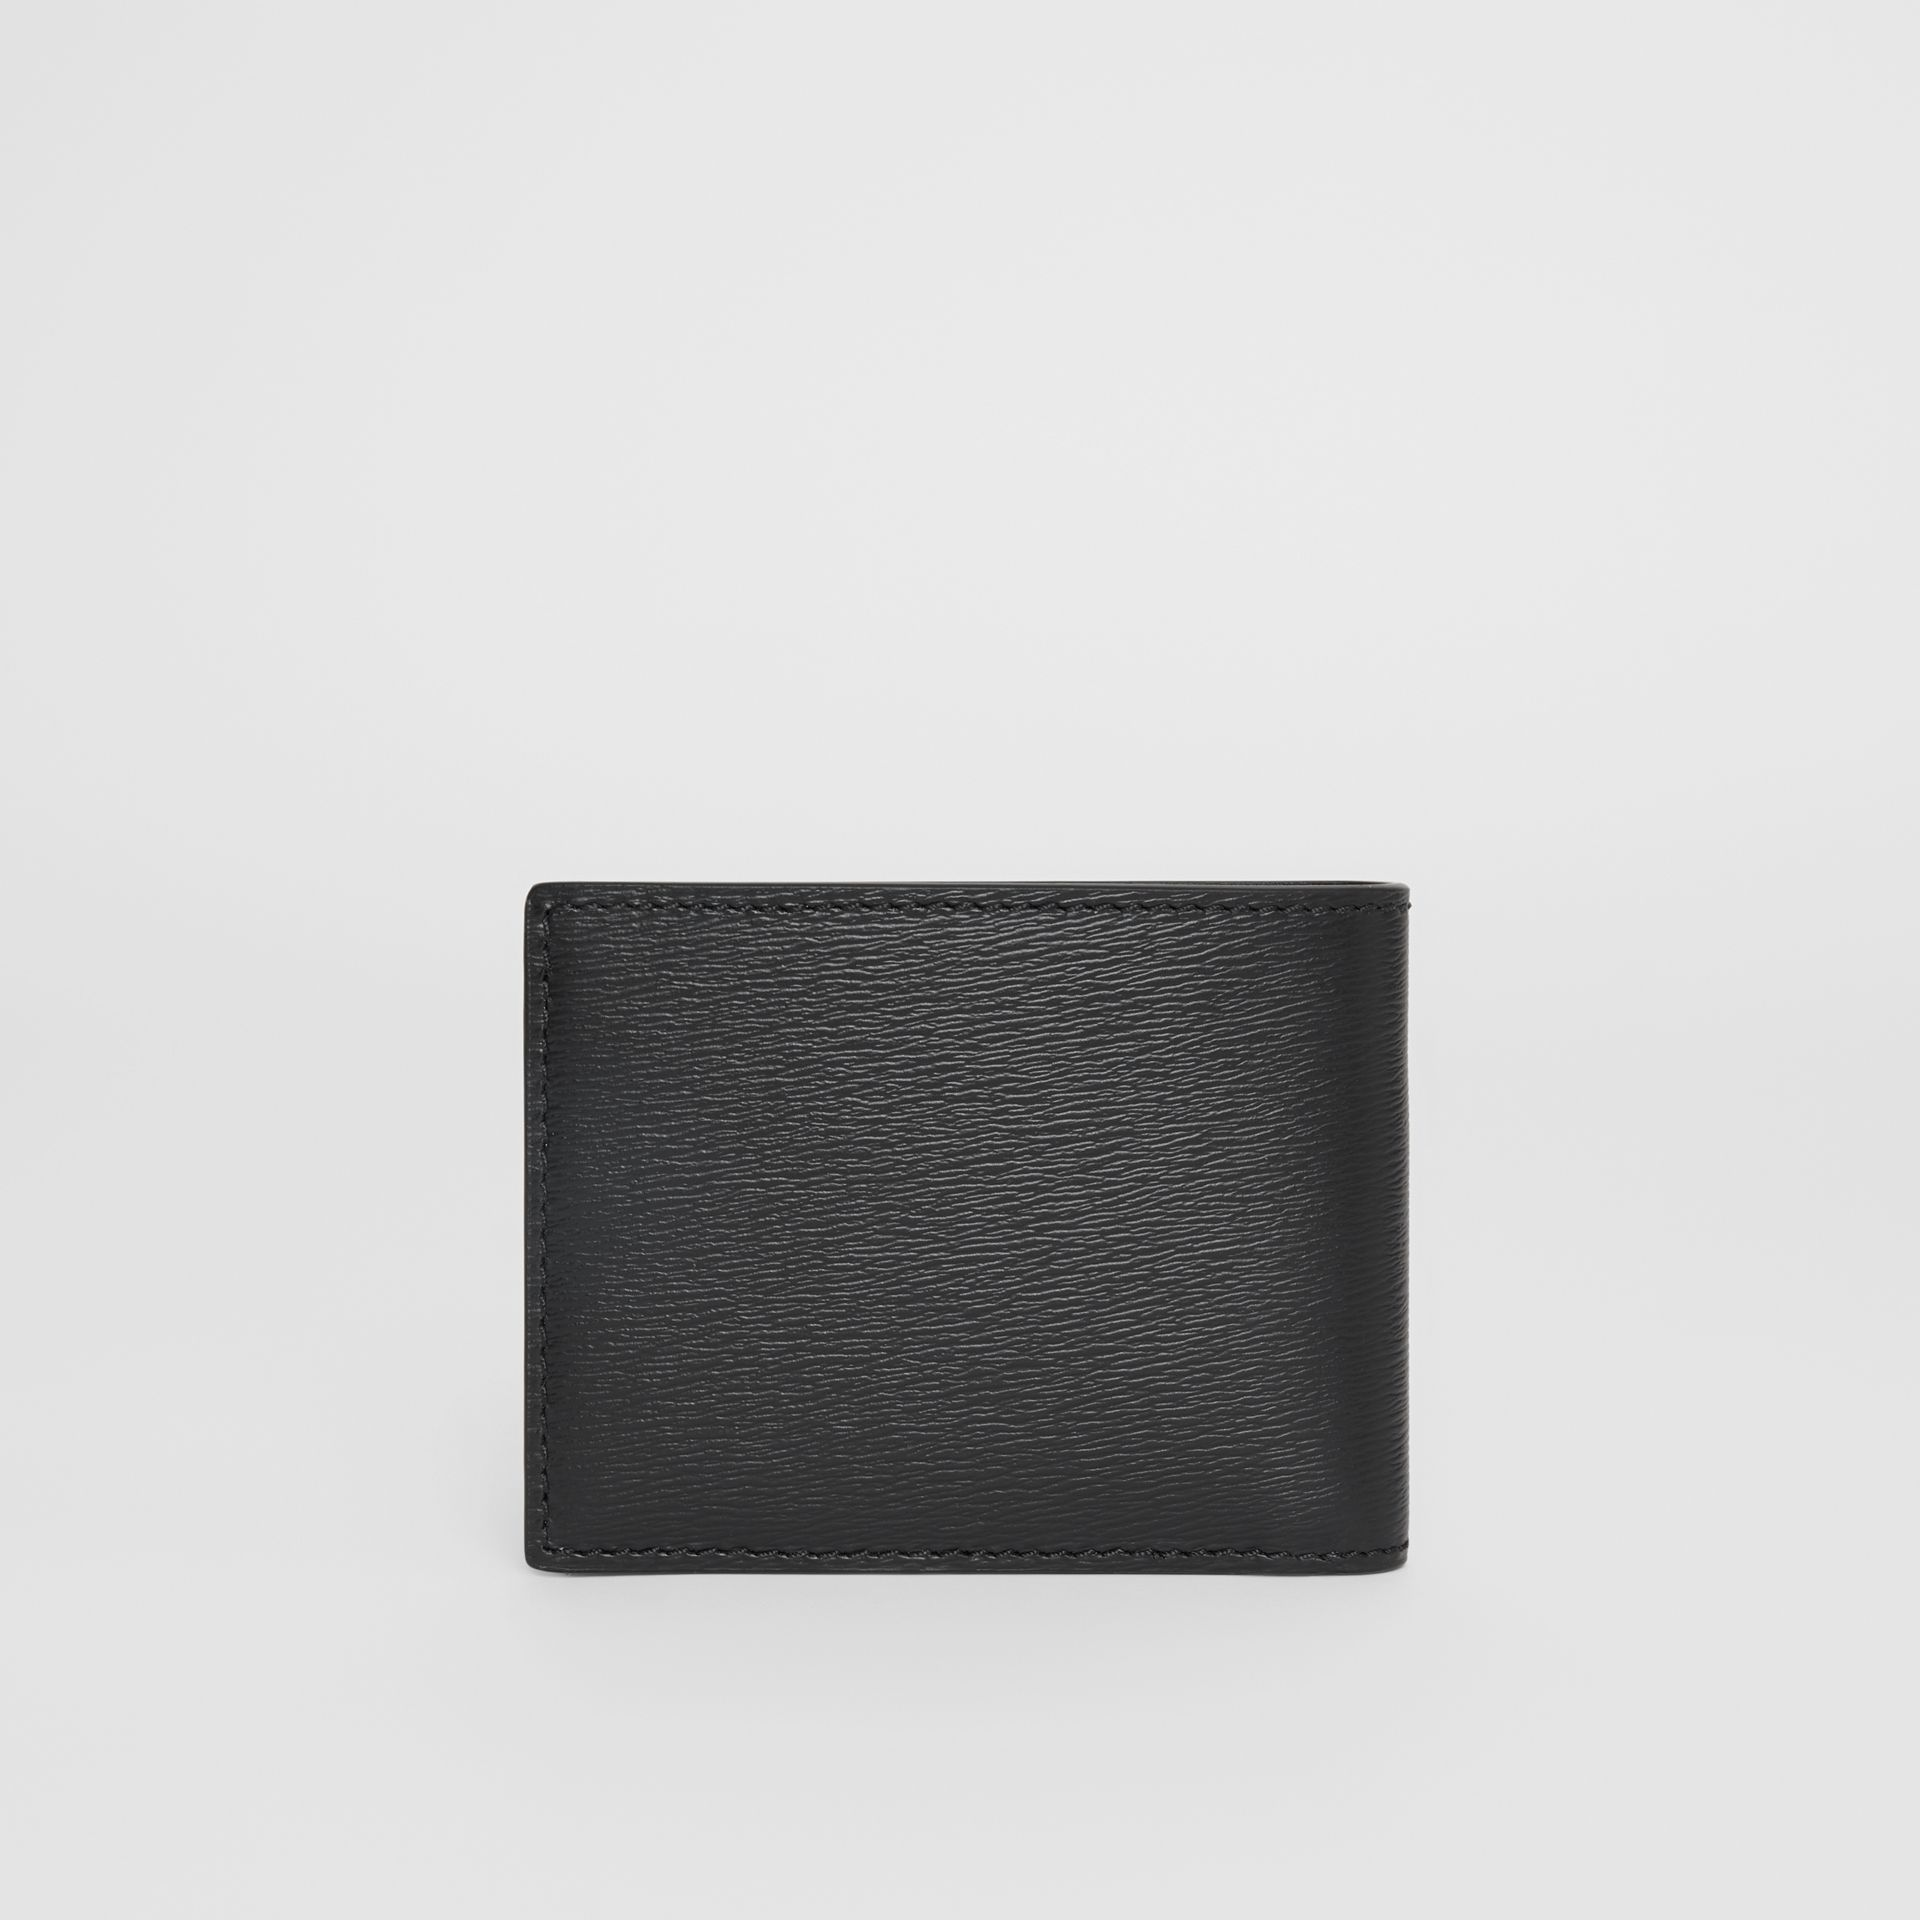 London Leather Bifold Wallet in Black - Men | Burberry - gallery image 4